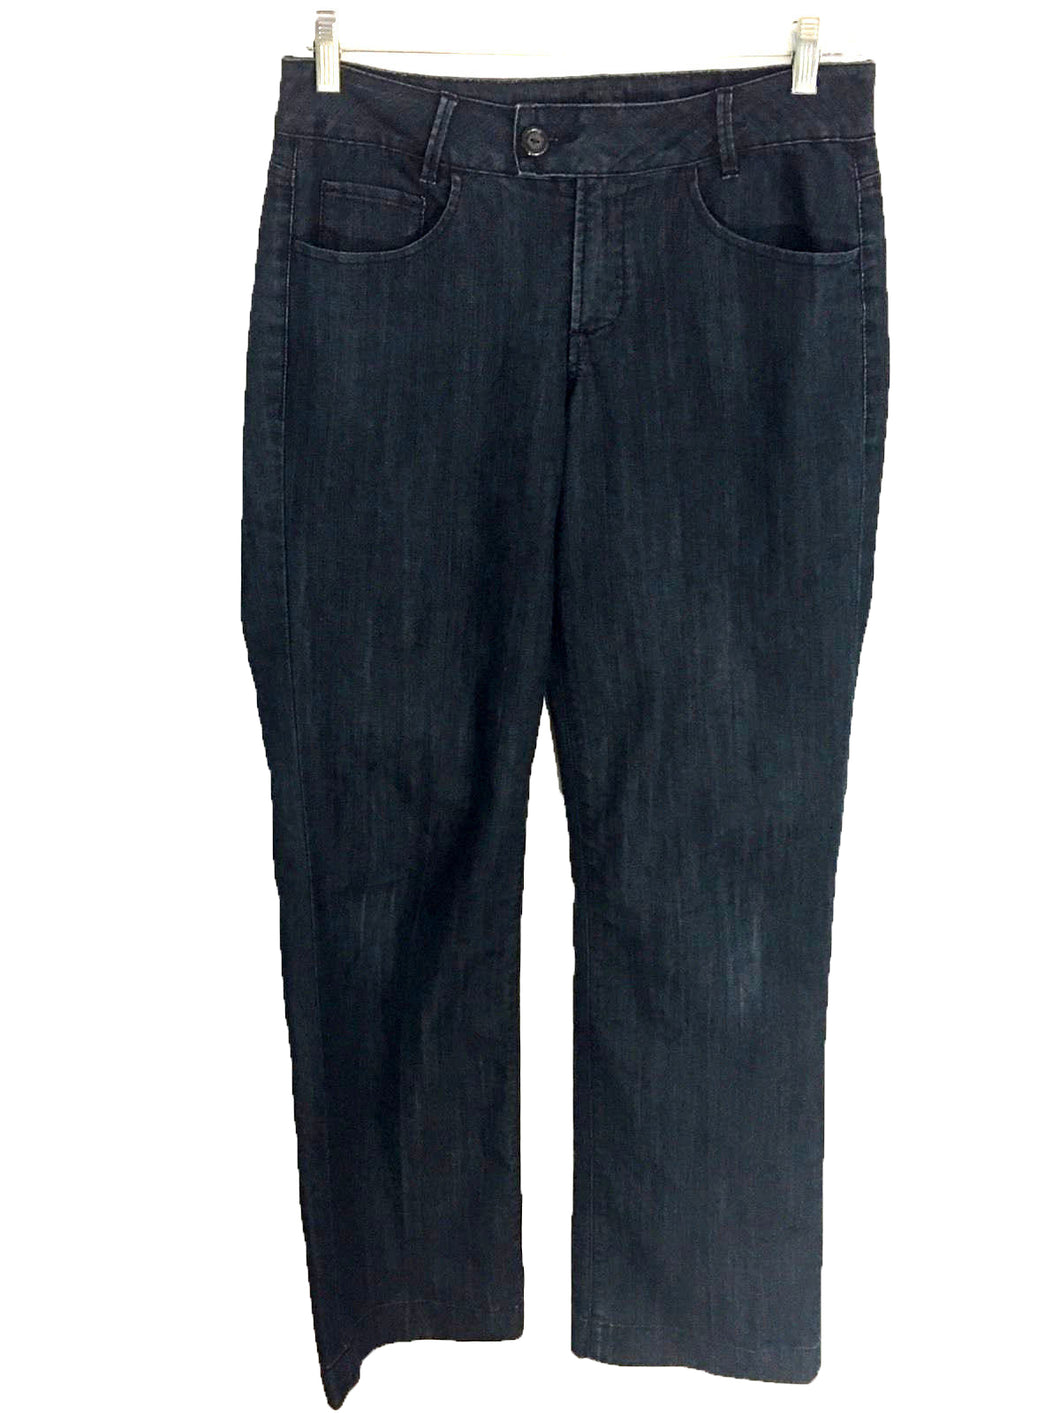 JAG Jeans Mid Rise Trouser Pants Dark Blue Cotton Blend Womens 8 Actual 30 x 33 - Preowned - FunkyCrap Boutique